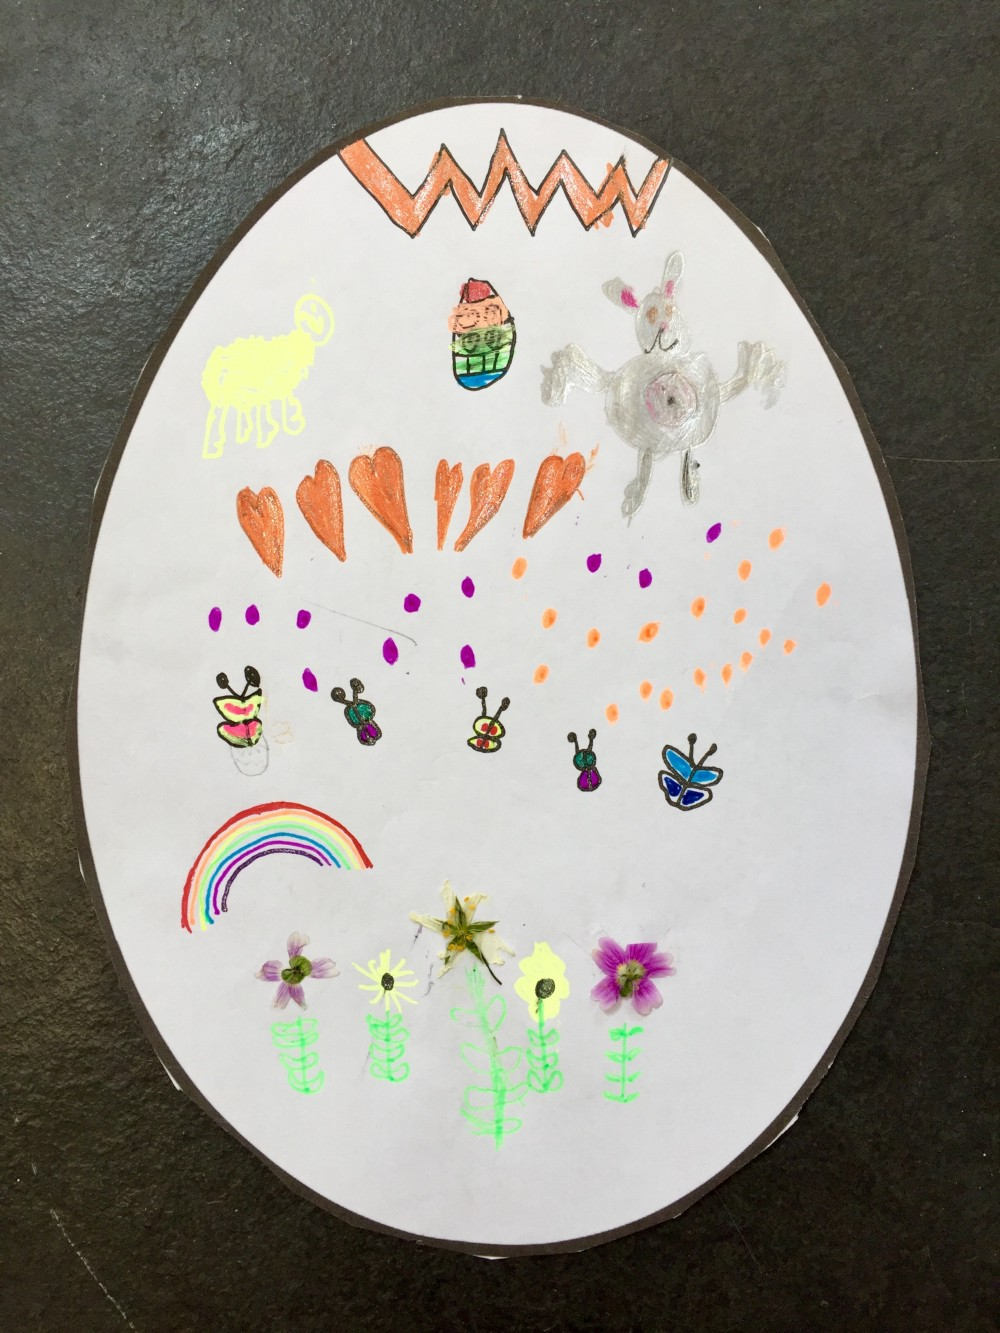 Egg telling the story of Easter and Spring - real flowers at bottom - Clara Smith (age 6)